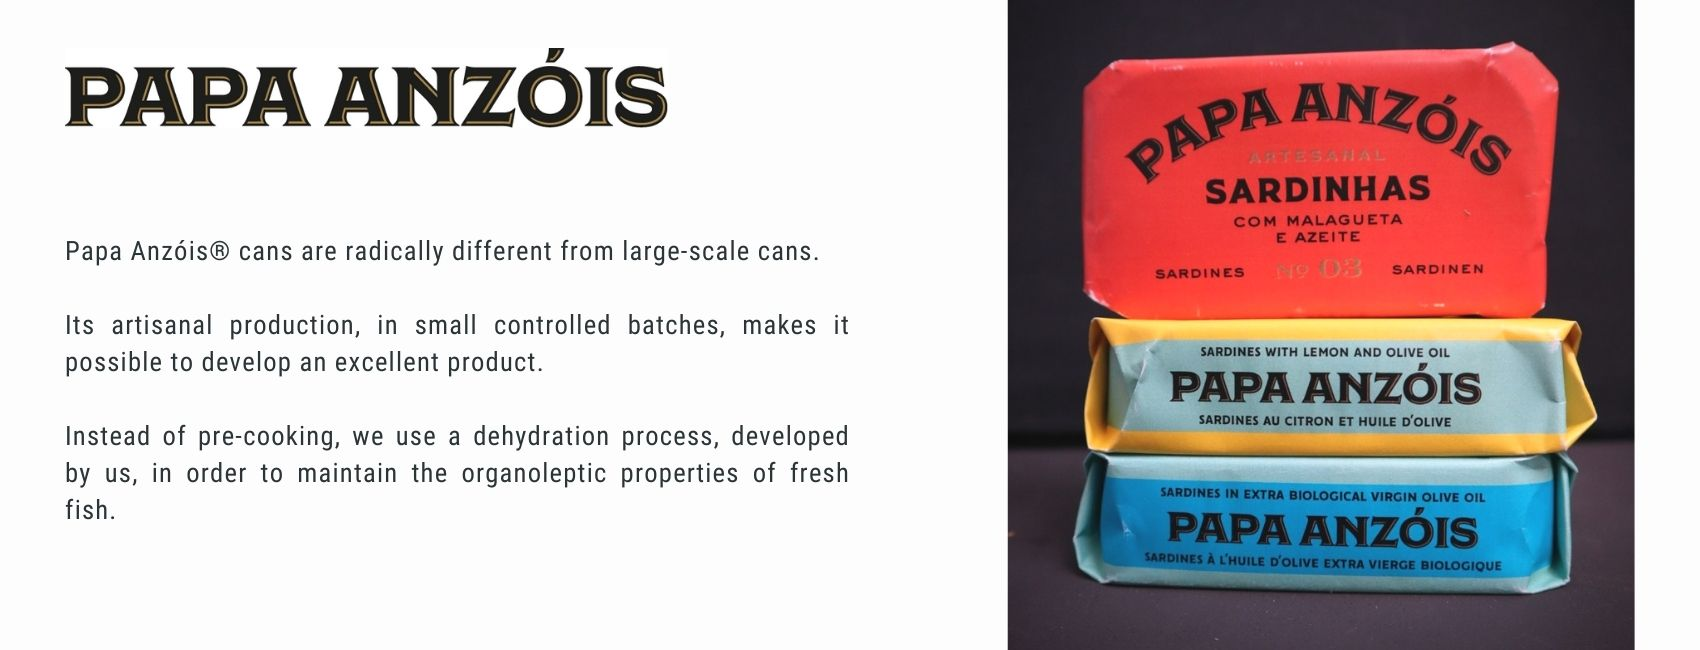 Papa Anzóis® cans are radically different from large-scale cans.  Its artisanal production, in small controlled batches, makes it possible to develop an excellent product.  Instead of pre-cooking, we use a dehydration process, developed by us, in order to maintain the organoleptic properties of fresh fish.